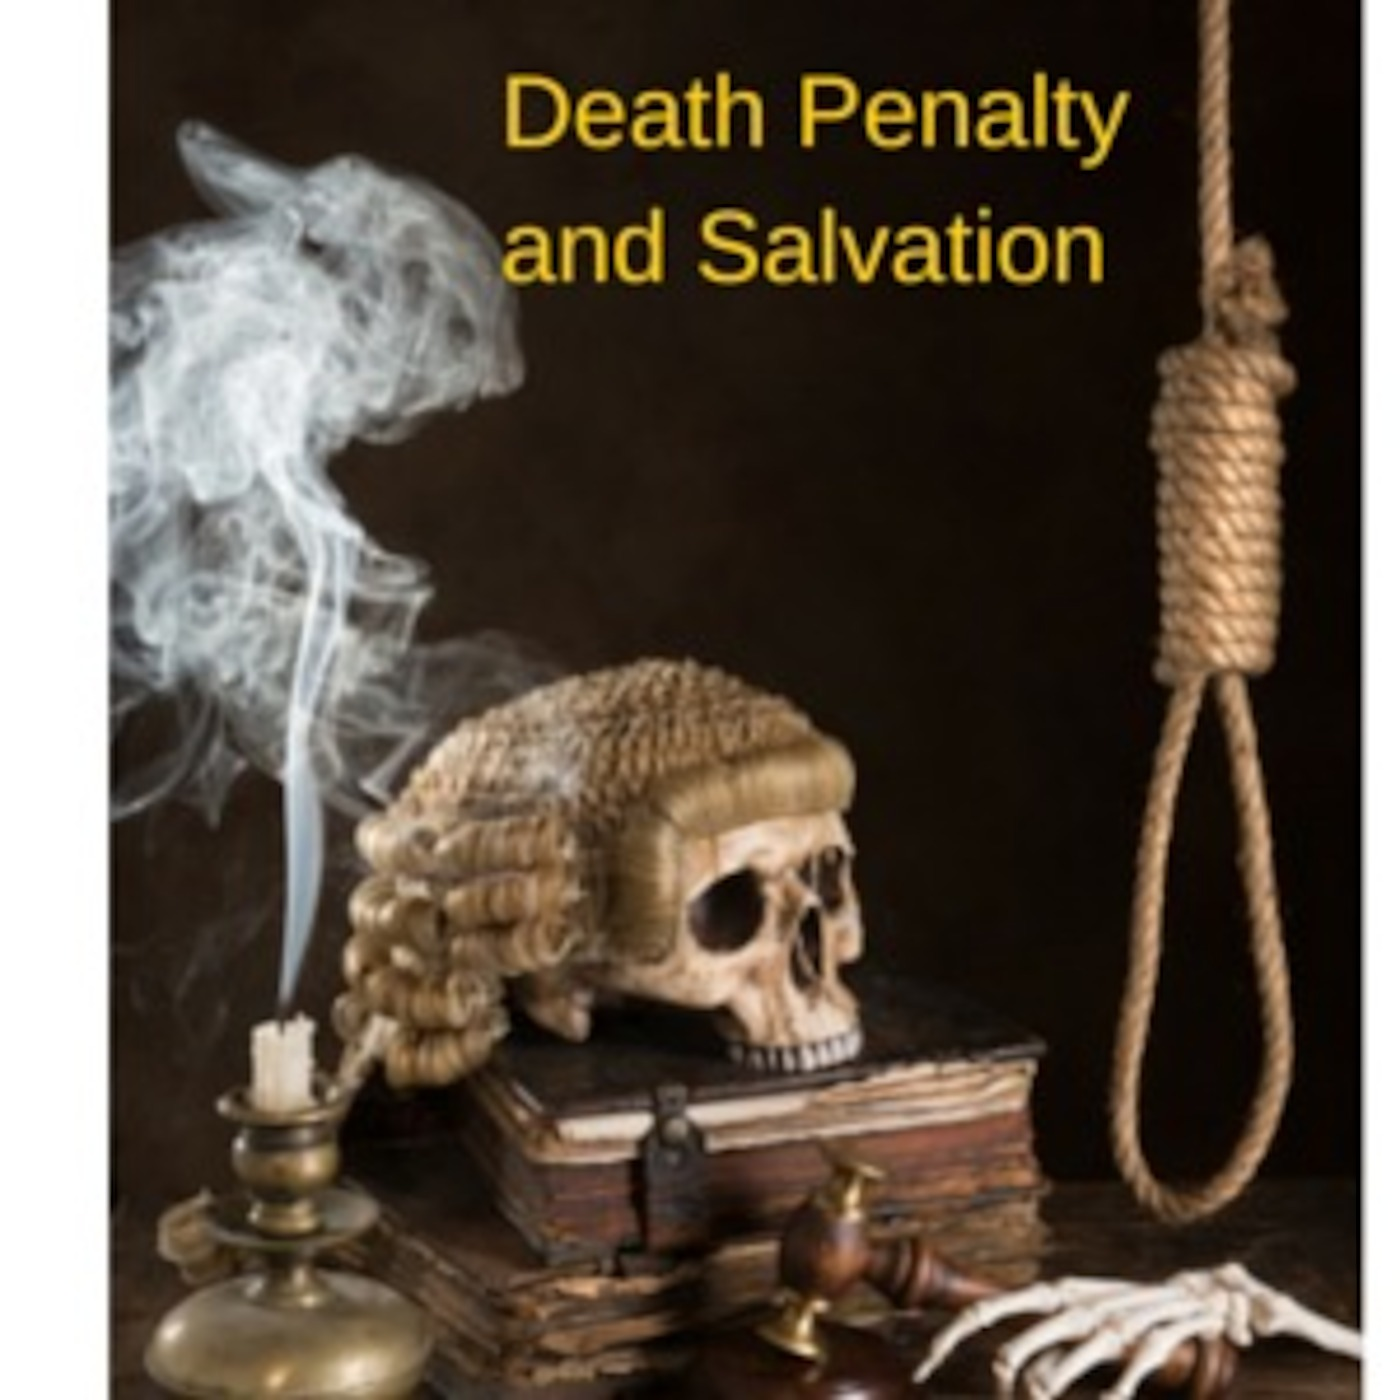 reflections on the death penalty